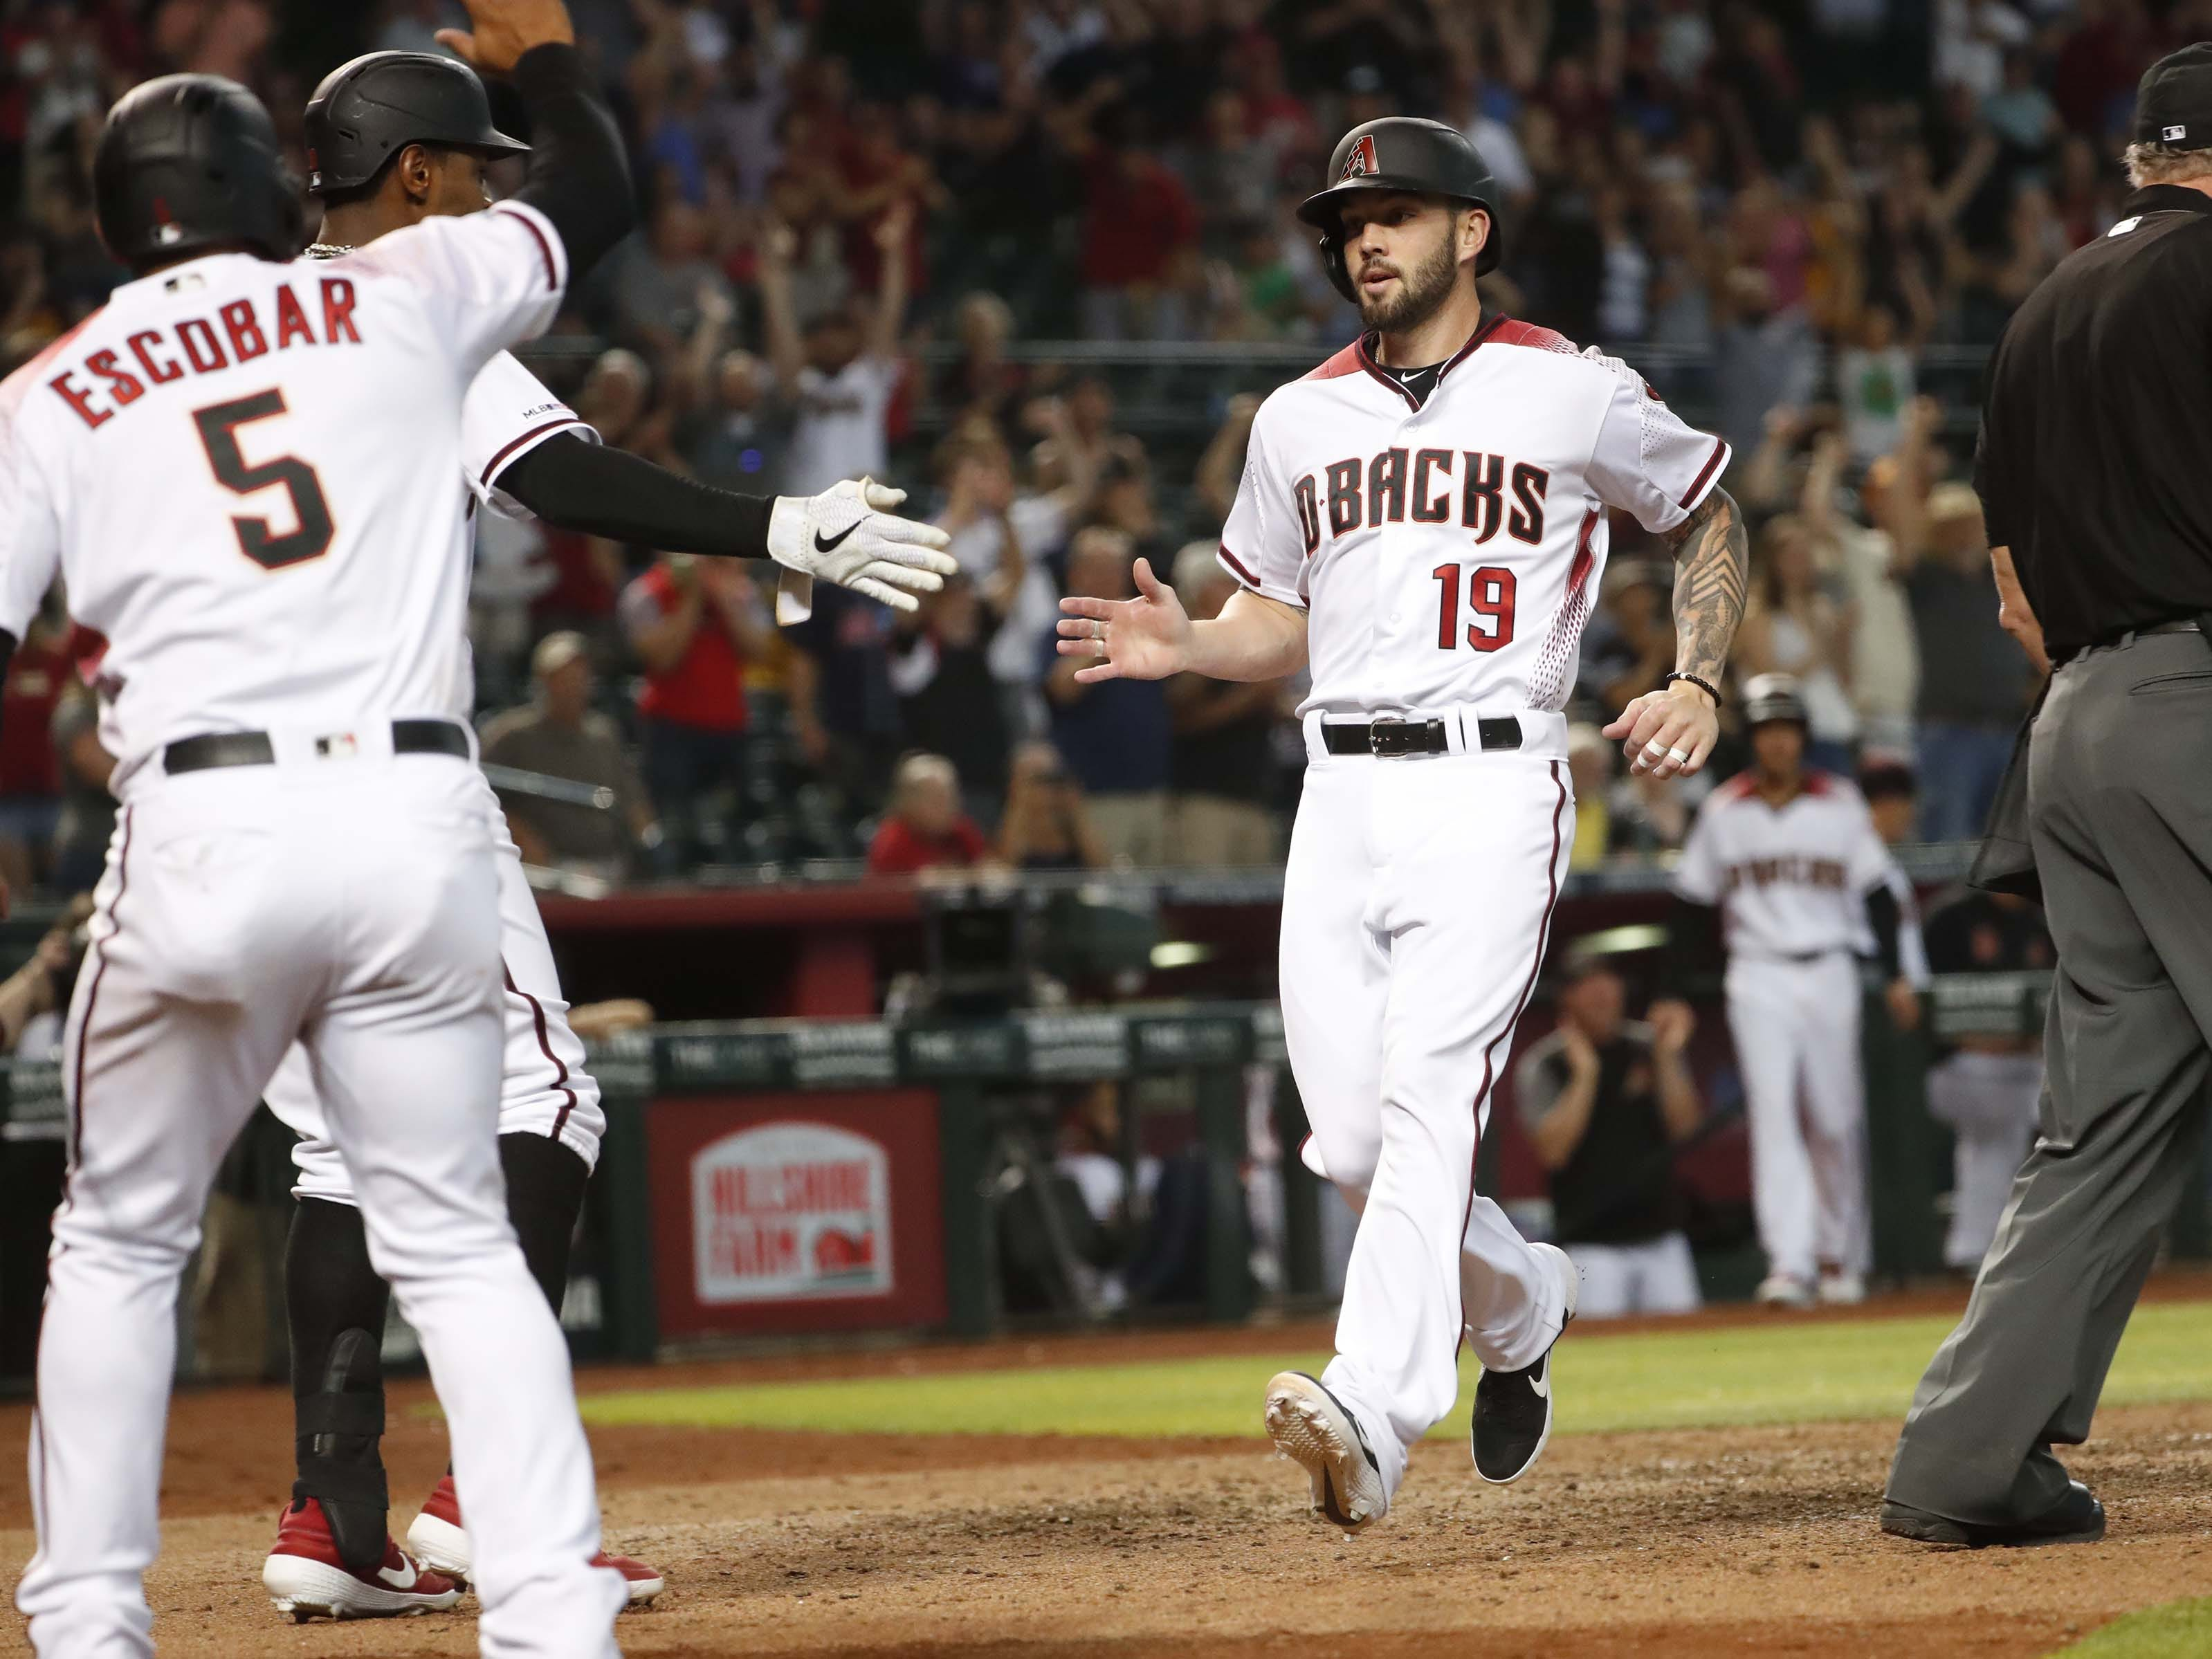 Arizona Diamondbacks' Blake Swihart (19) crosses home plate with an inside-the-park two-run home run against the Pittsburgh Pirates during the eighth inning at Chase Field in Phoenix, Ariz. May 15, 2019.